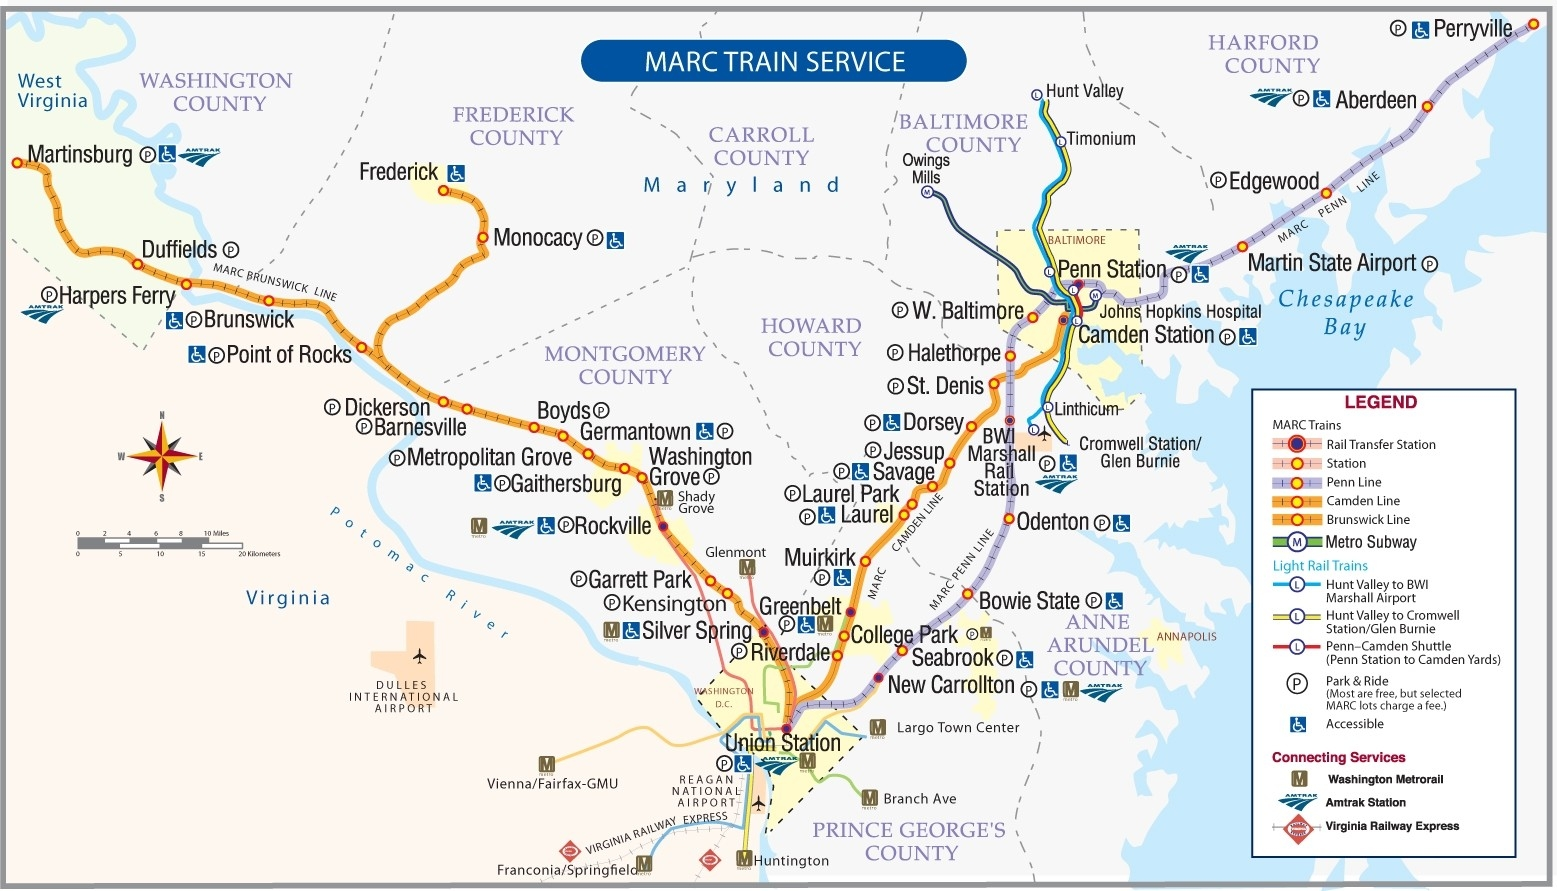 Penn Line Schedules   Maryland Transit Administration for Marc Penn Line Schedule 46140